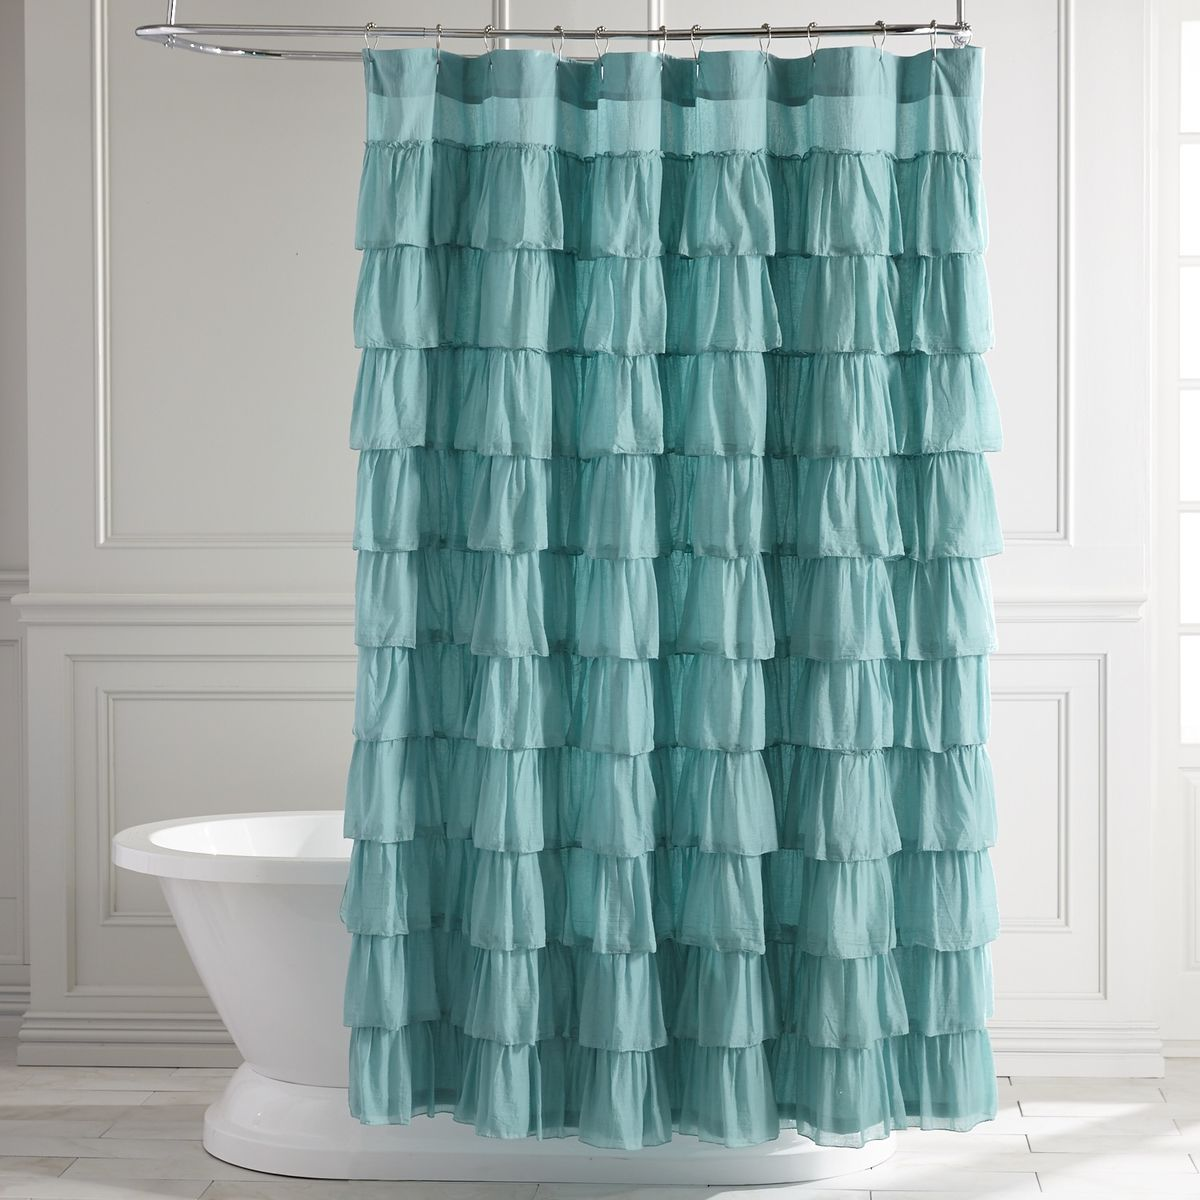 Solid teal shower curtain - Ruffled Turquoise Shower Curtain